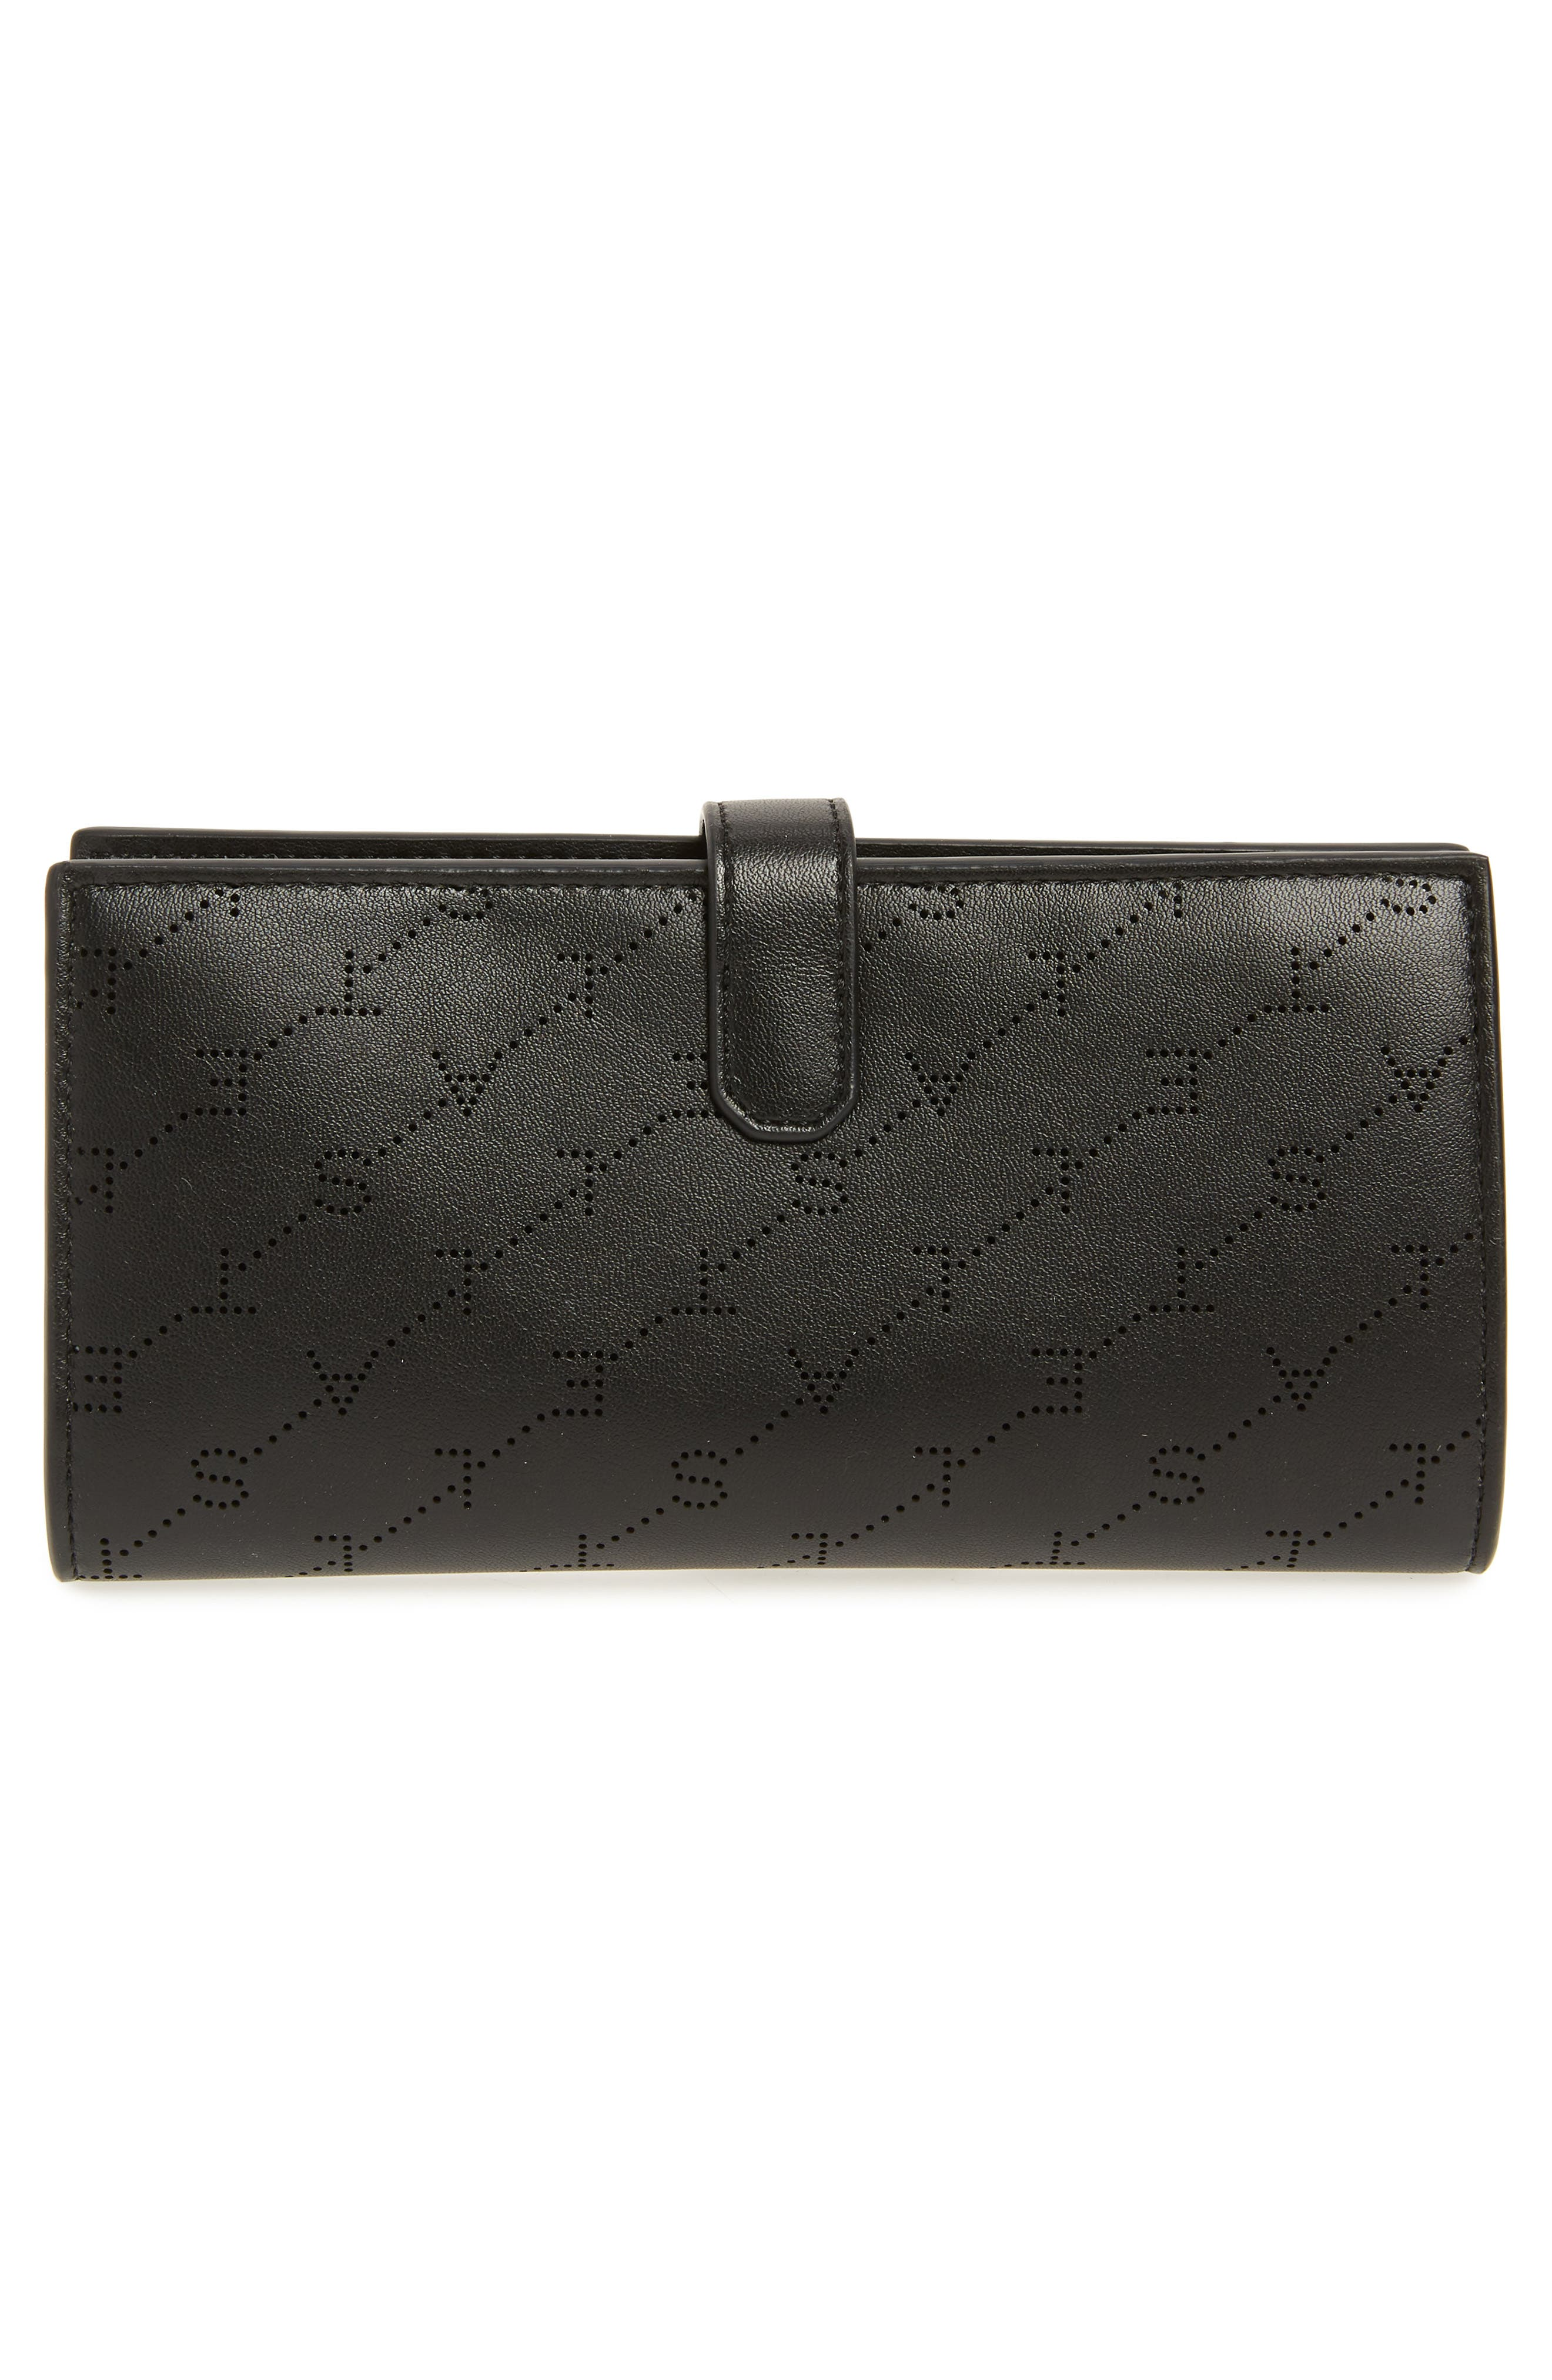 STELLA MCCARTNEY, Logo Perforated Faux Leather Continental Wallet, Alternate thumbnail 3, color, BLACK